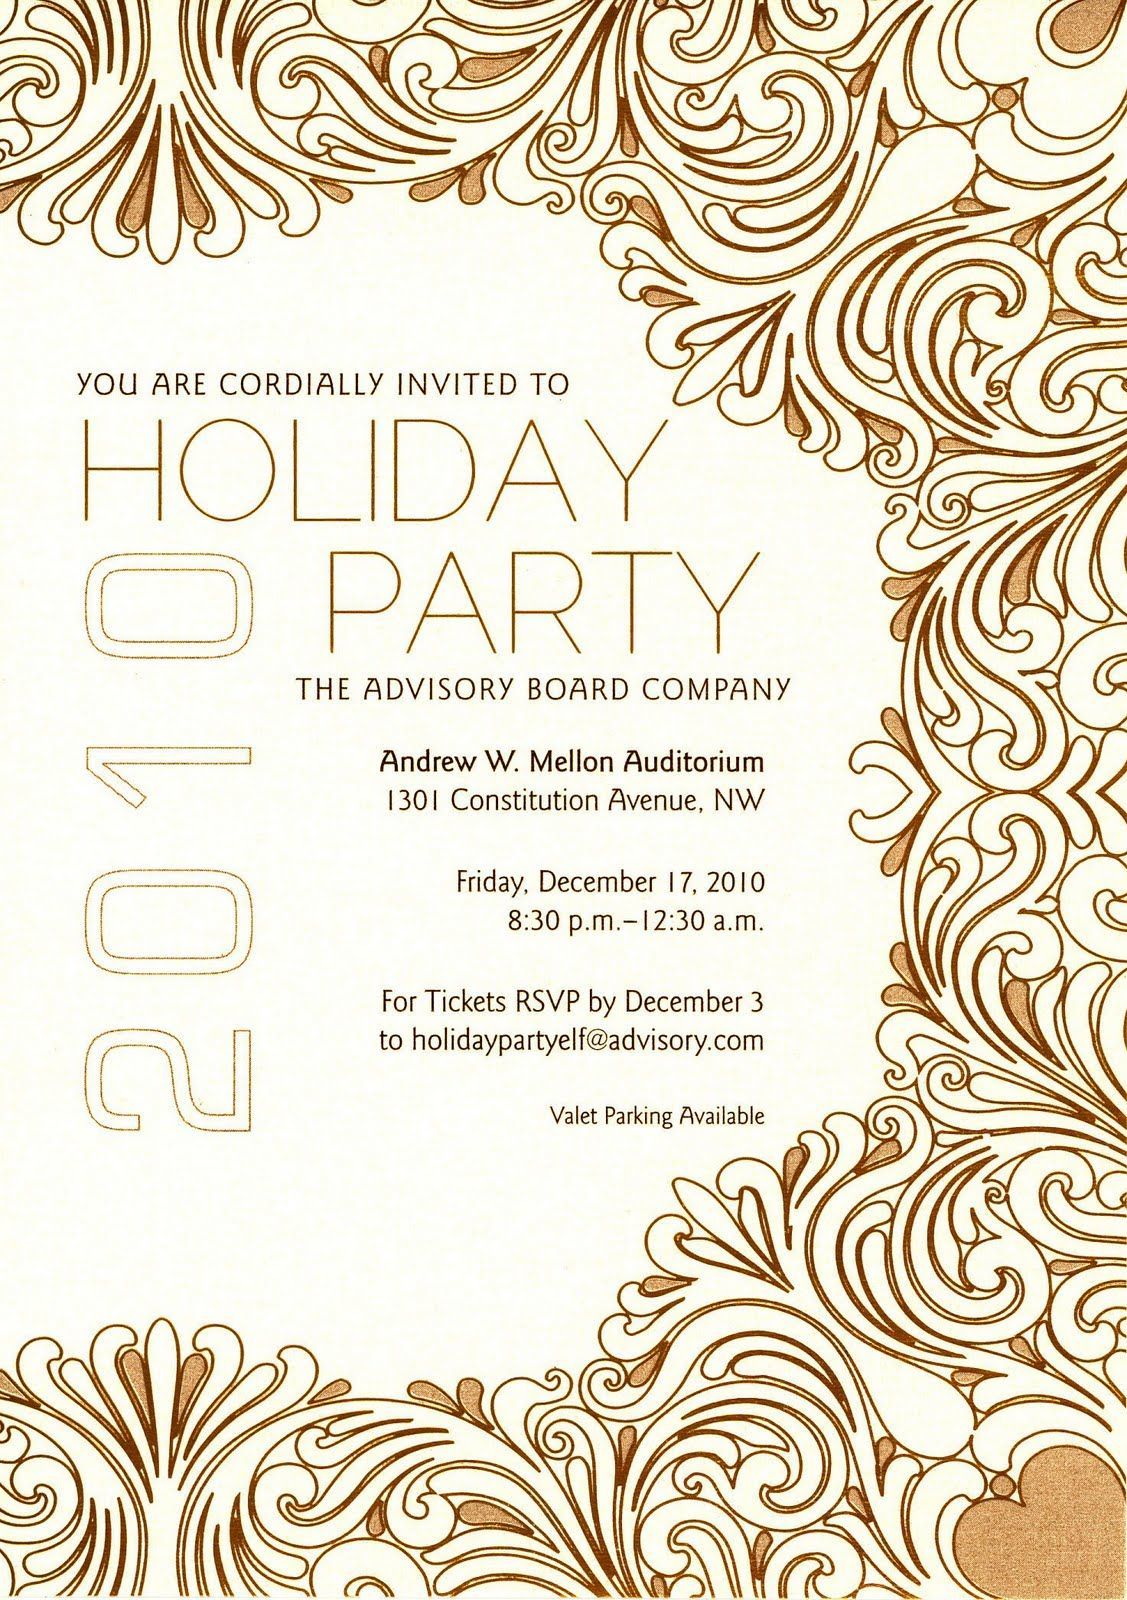 Mysoon Taha Portfolio Company Christmas Party Invitation - Party invitation template: office christmas party invite template